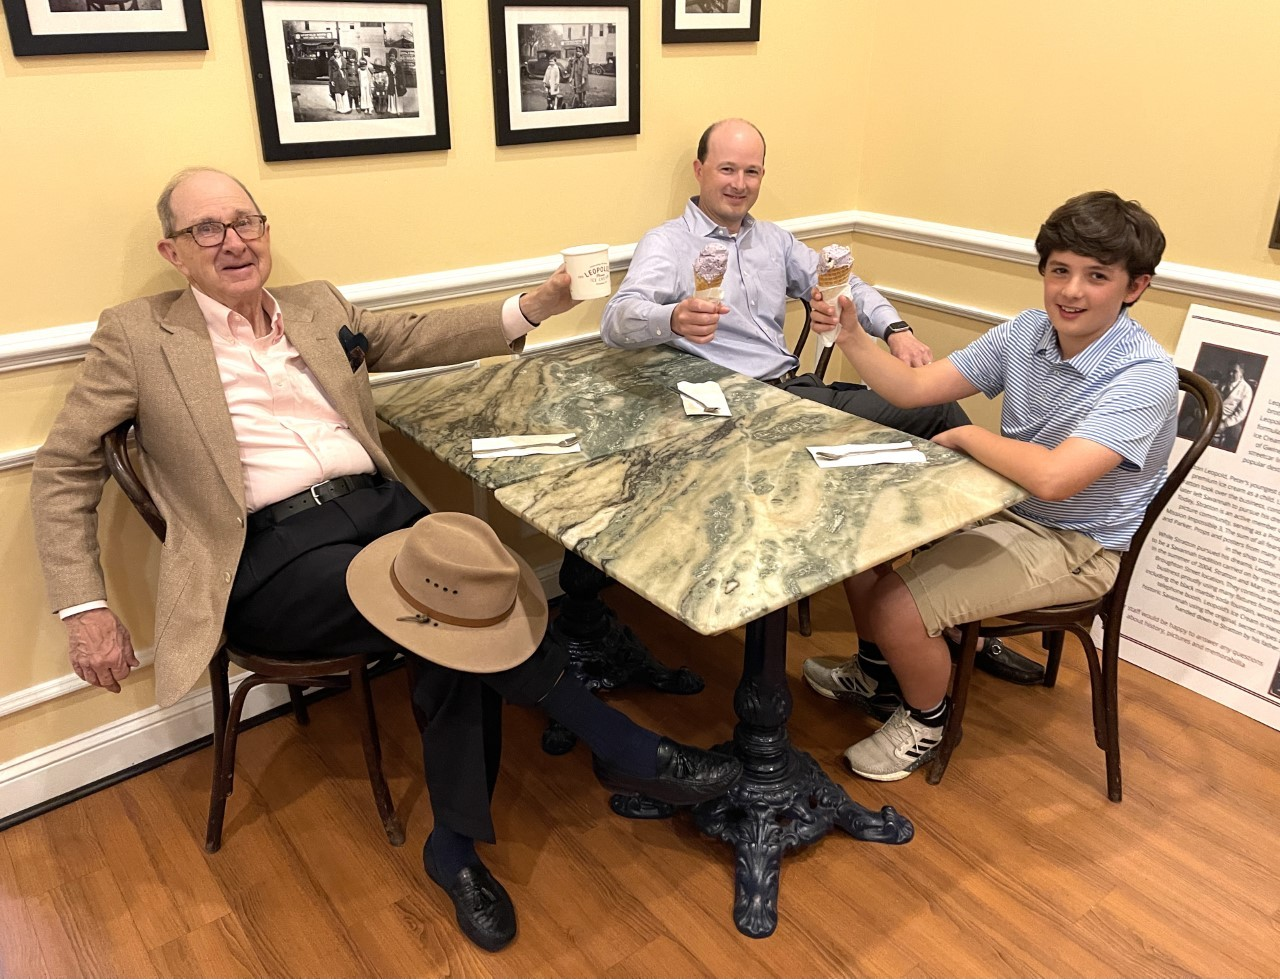 Charles H. Morris, left, enjoys the new Connecting Savannah Legacies ice cream flavor with Charles H. Morris Jr., son, and Charles Morris, III, grandson.